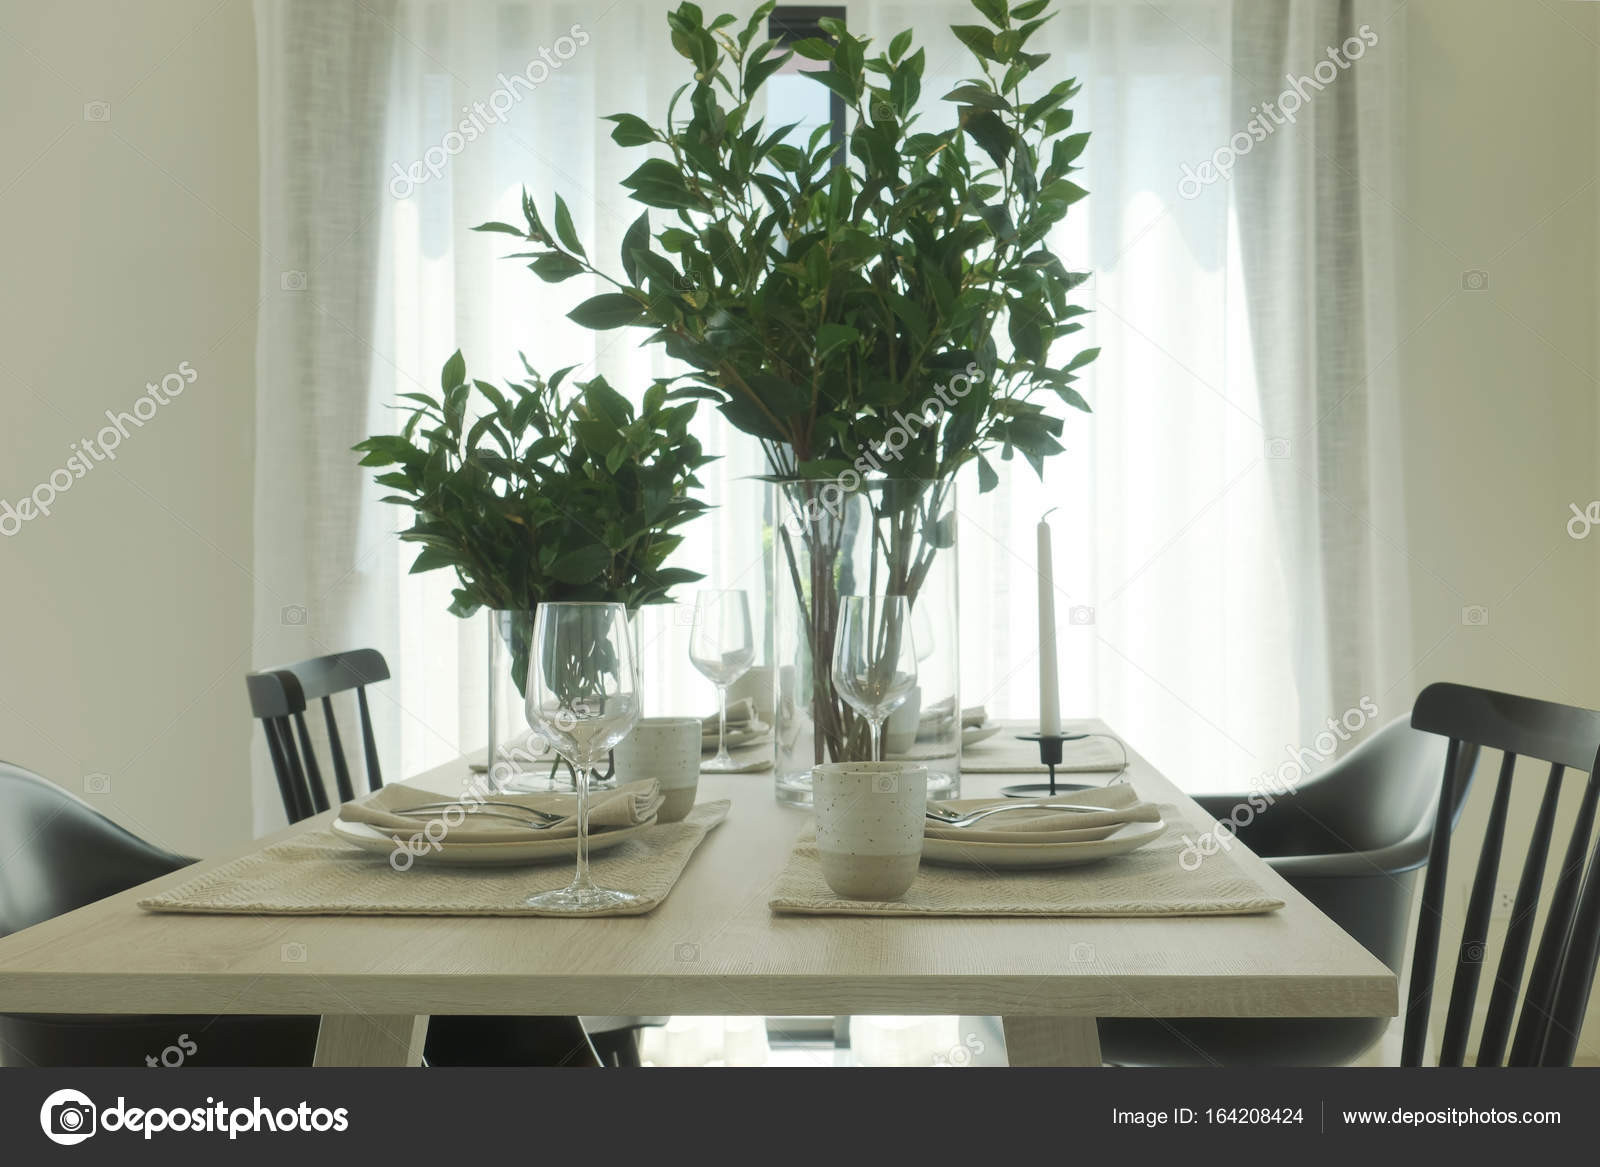 stock photo simply dining table with vase